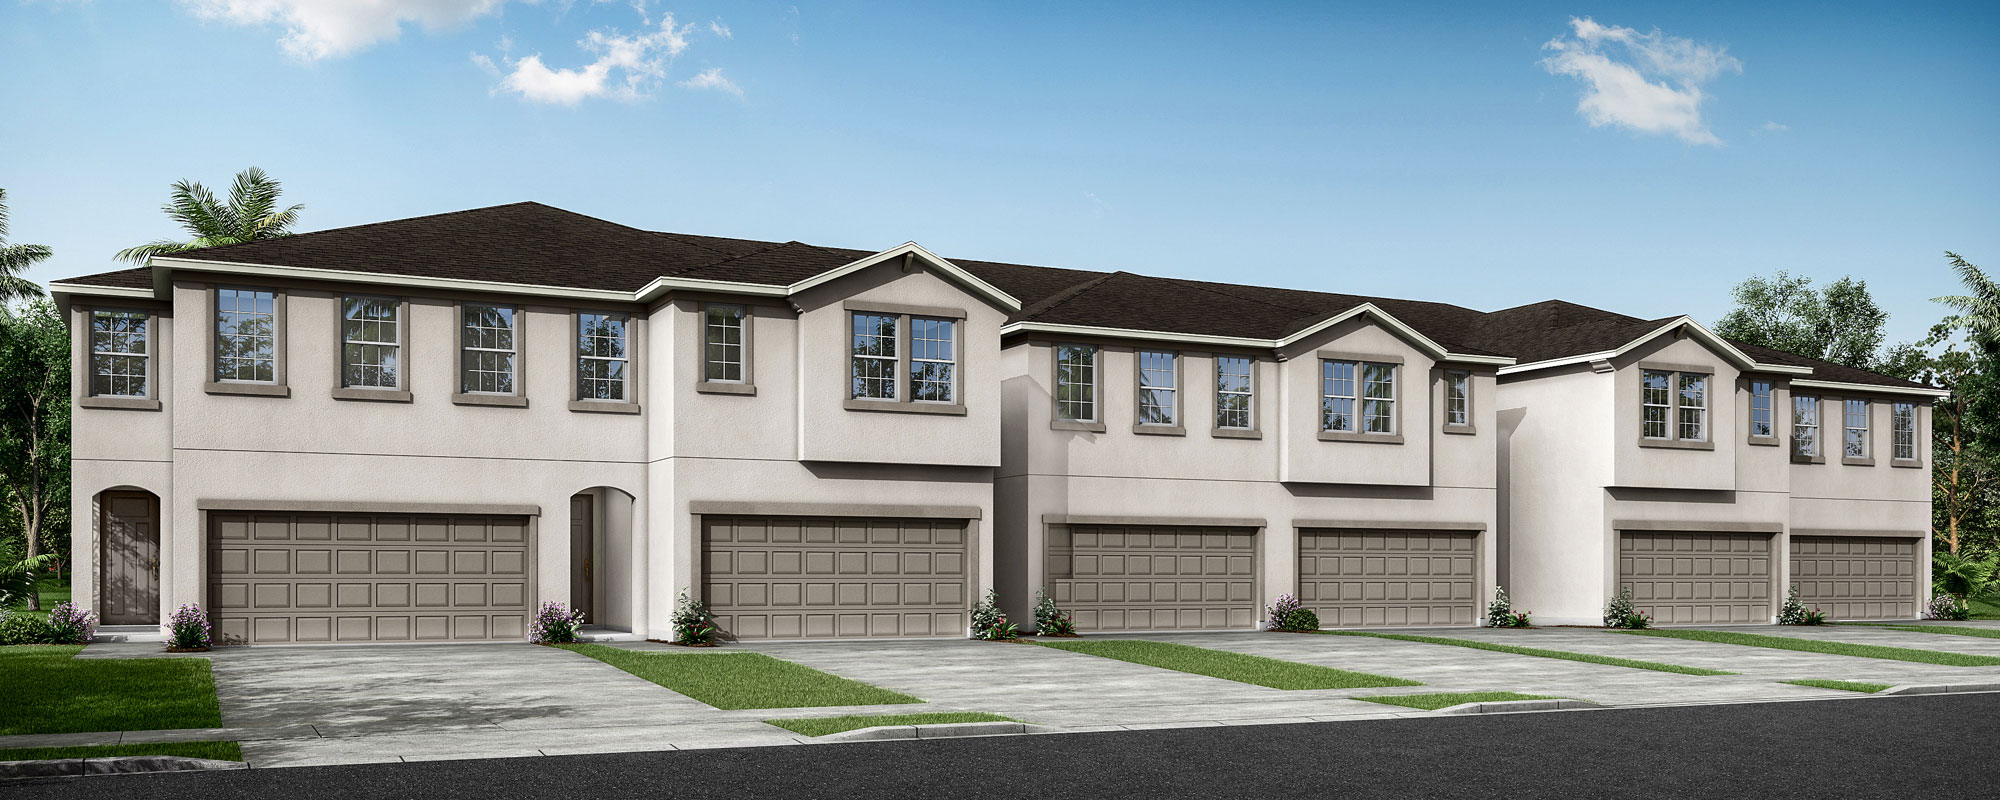 Venice Plan TownHomes at Parkview at Long Lake Ranch in Lutz Florida by Mattamy Homes